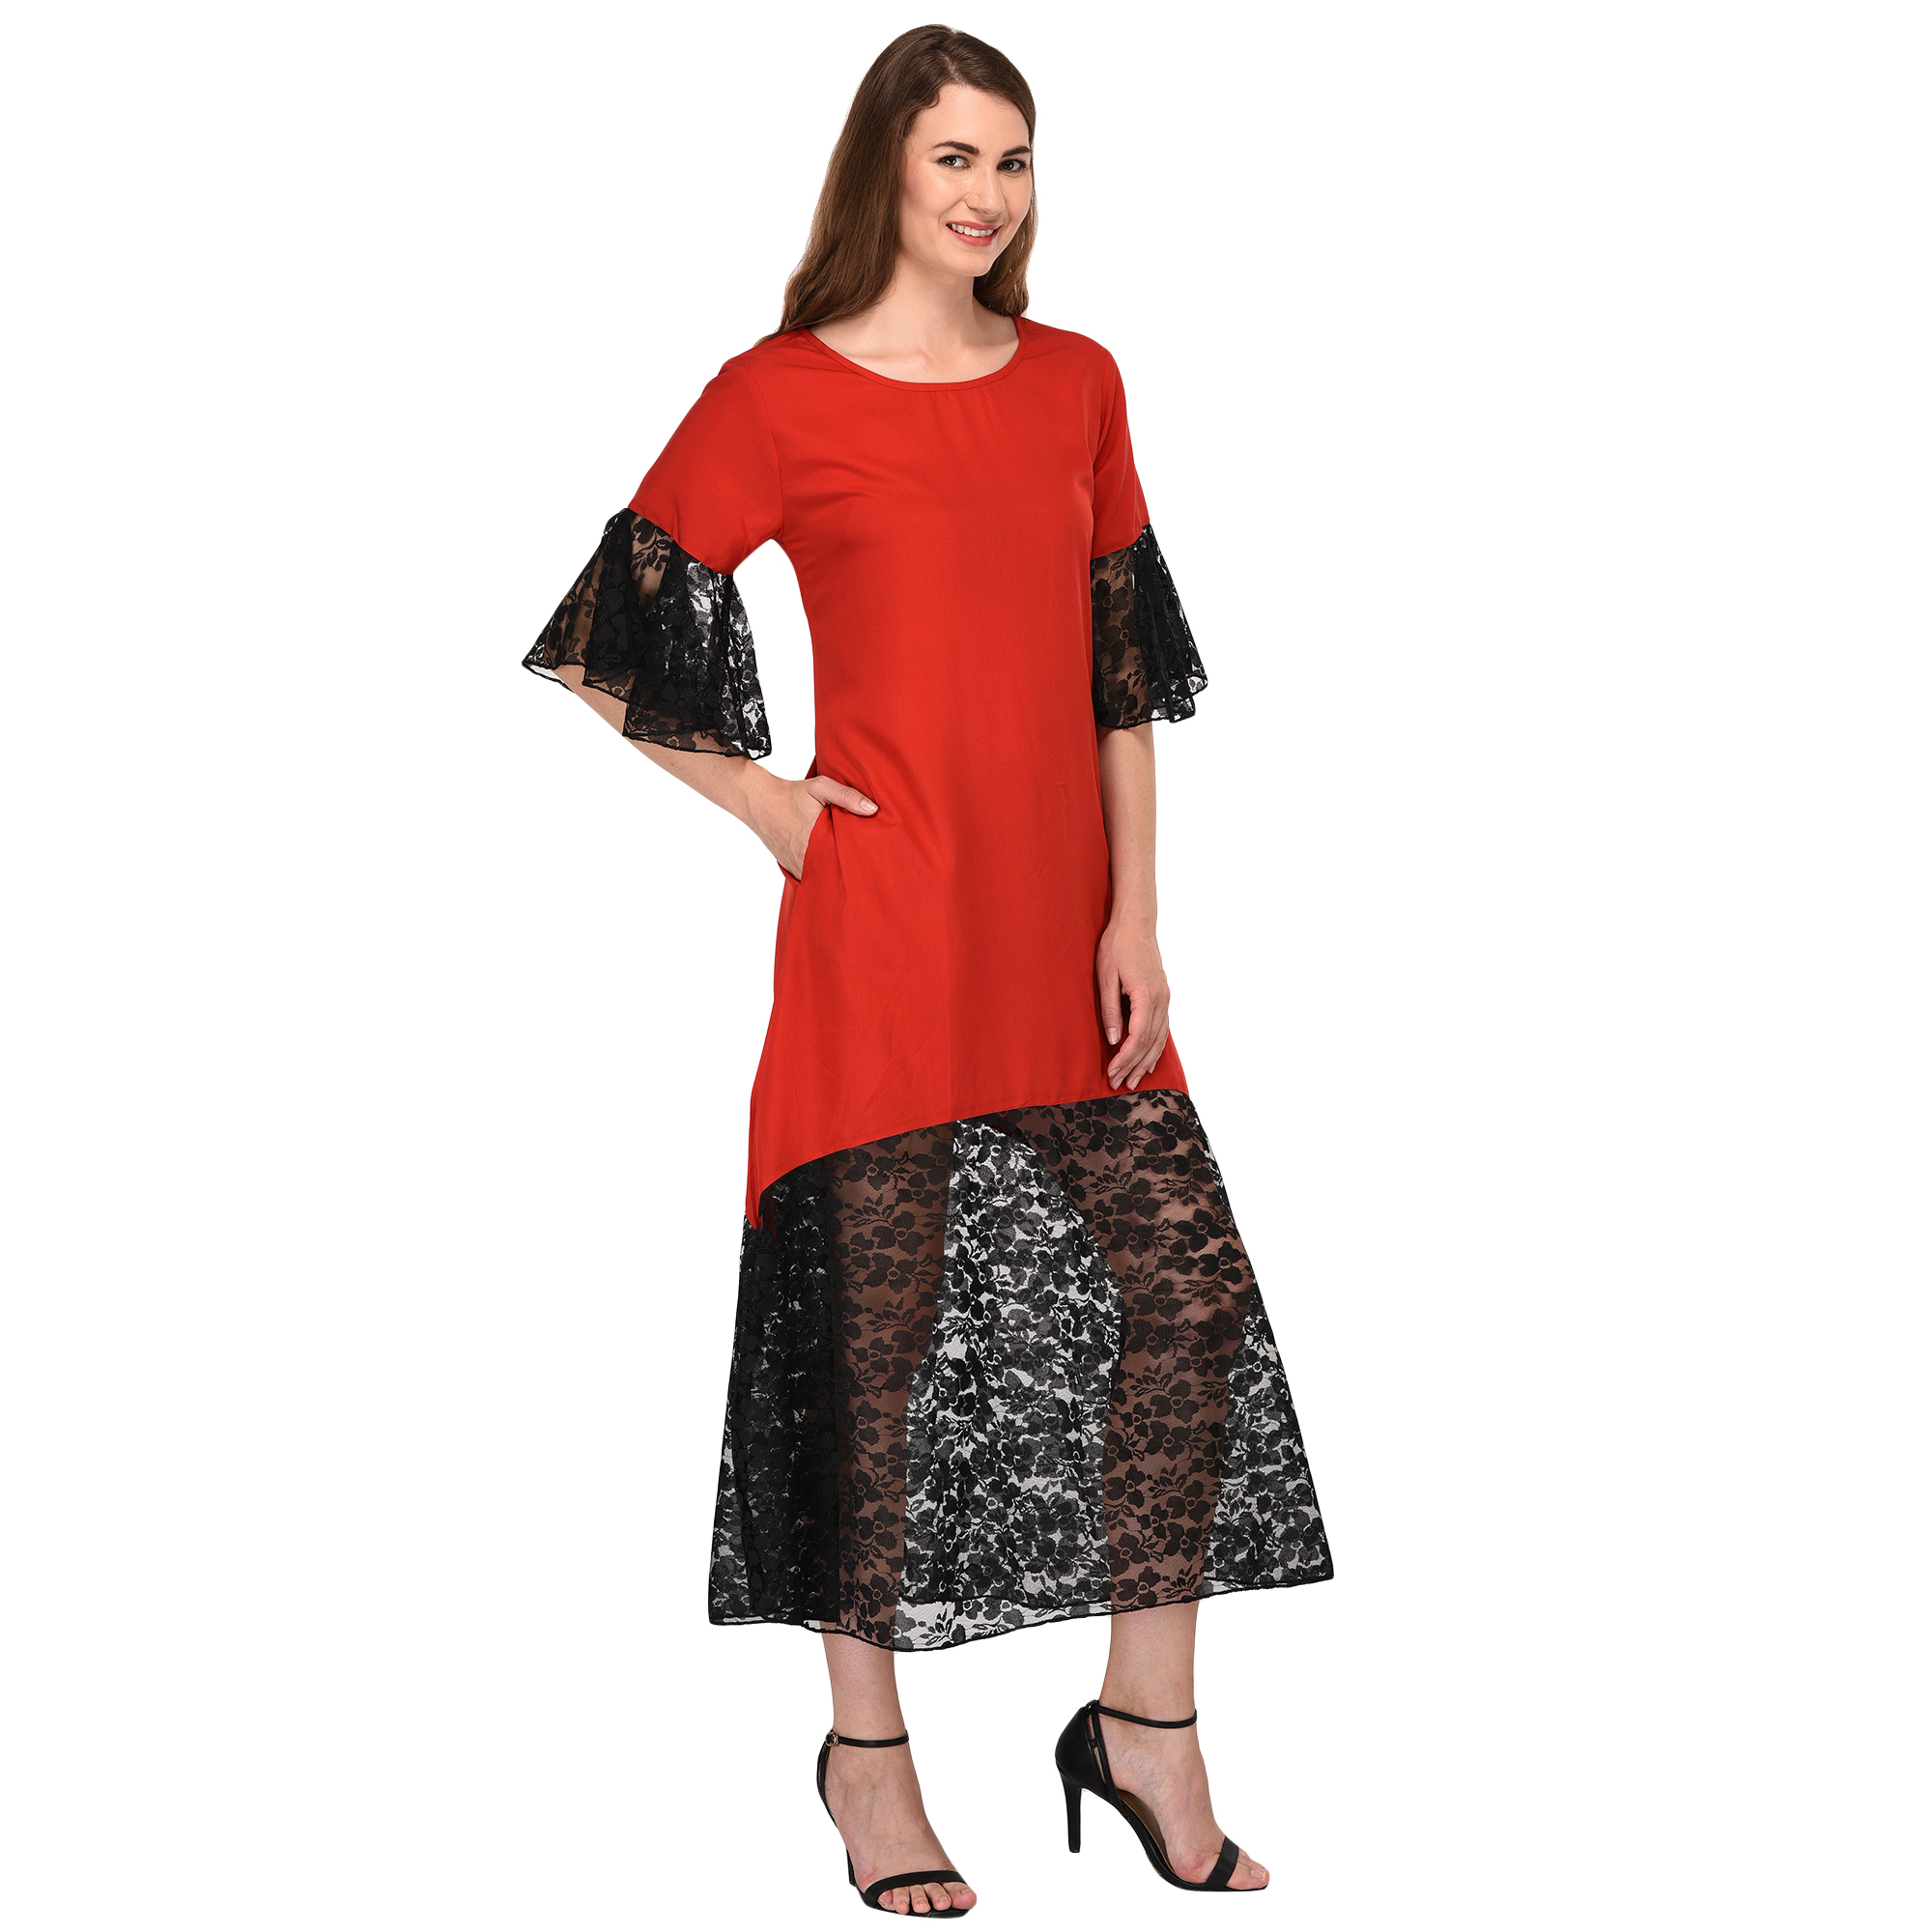 Bodycon Lace Trimmed Midi Dress in Red:Black